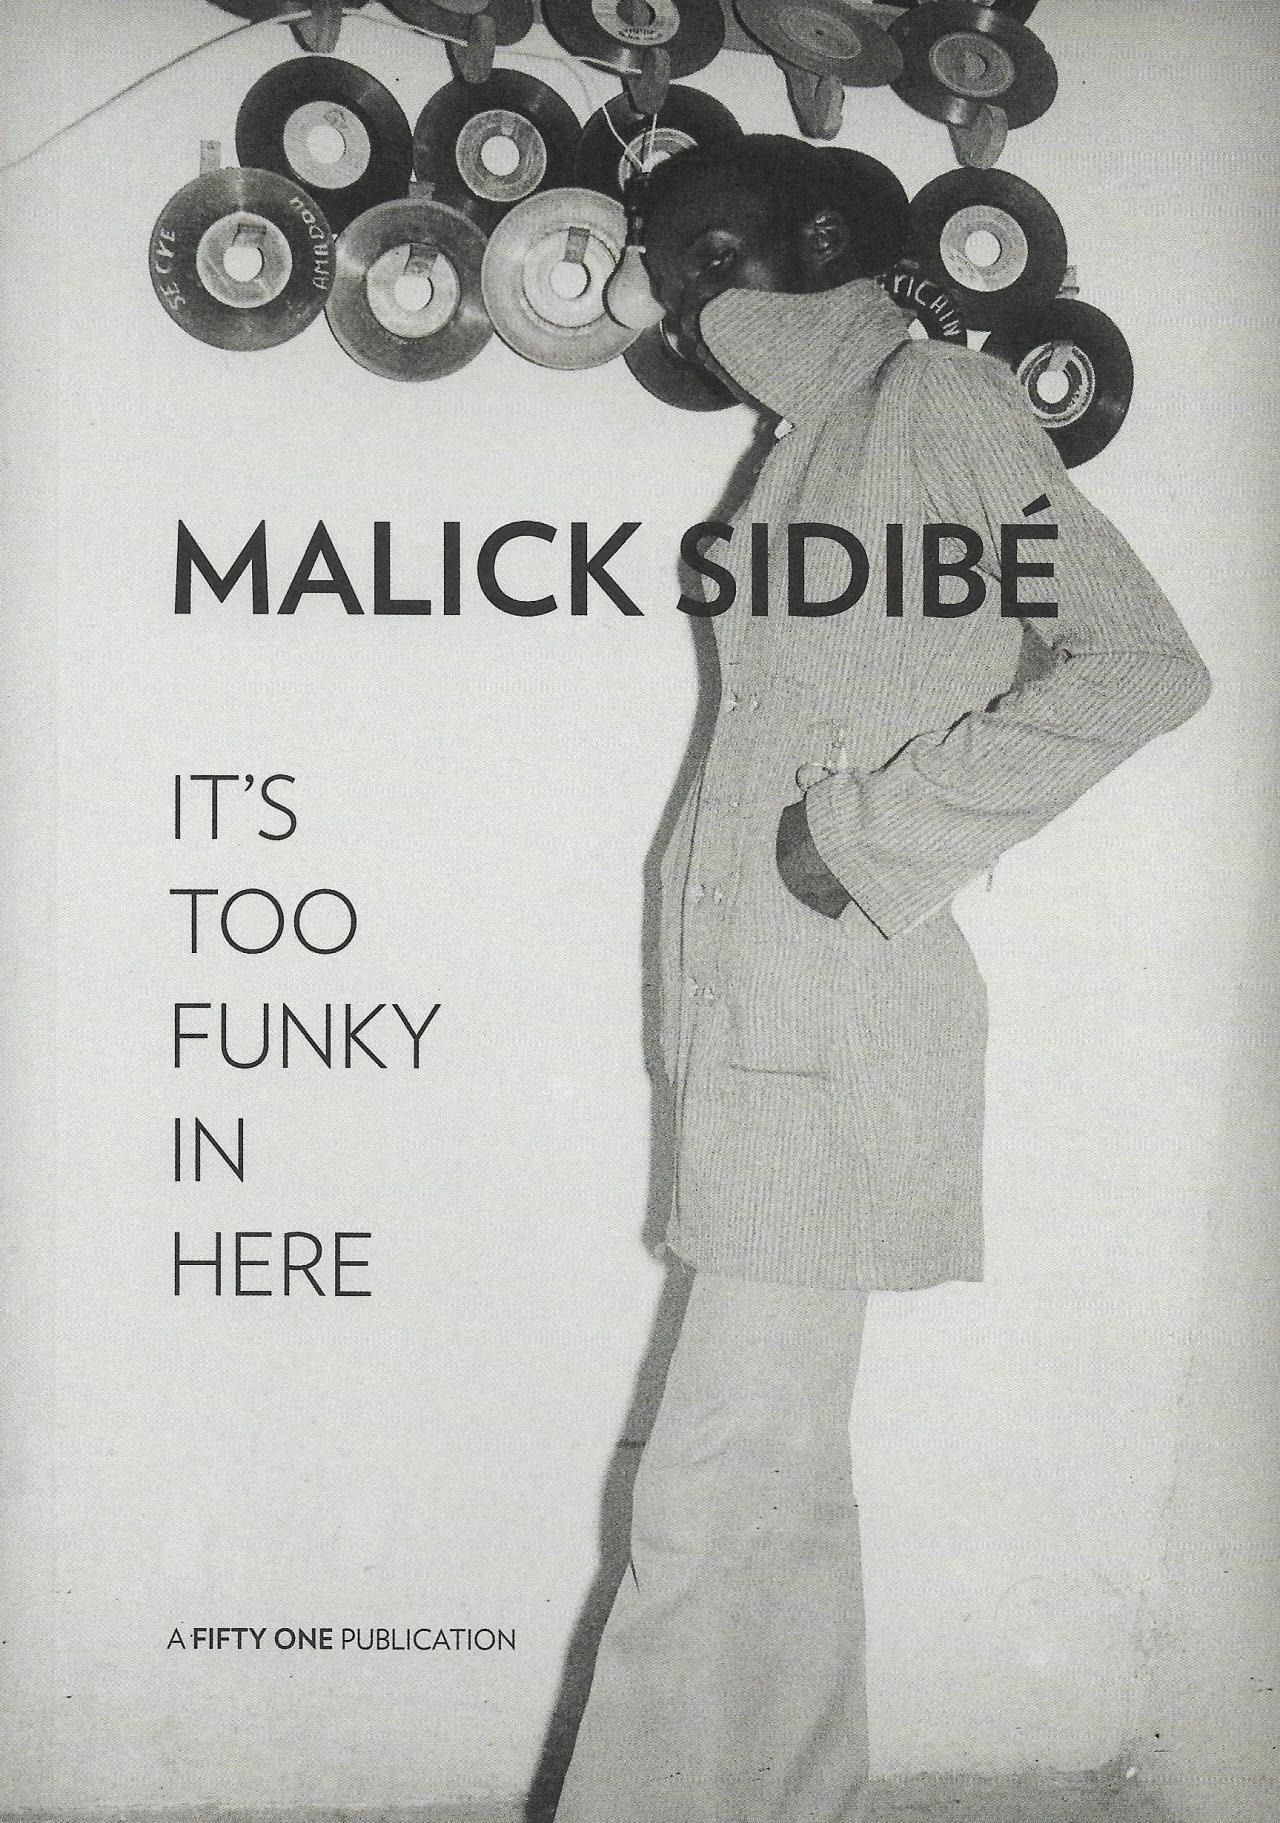 Malick Sidibé: IT'S TOO FUNKY IN HERE